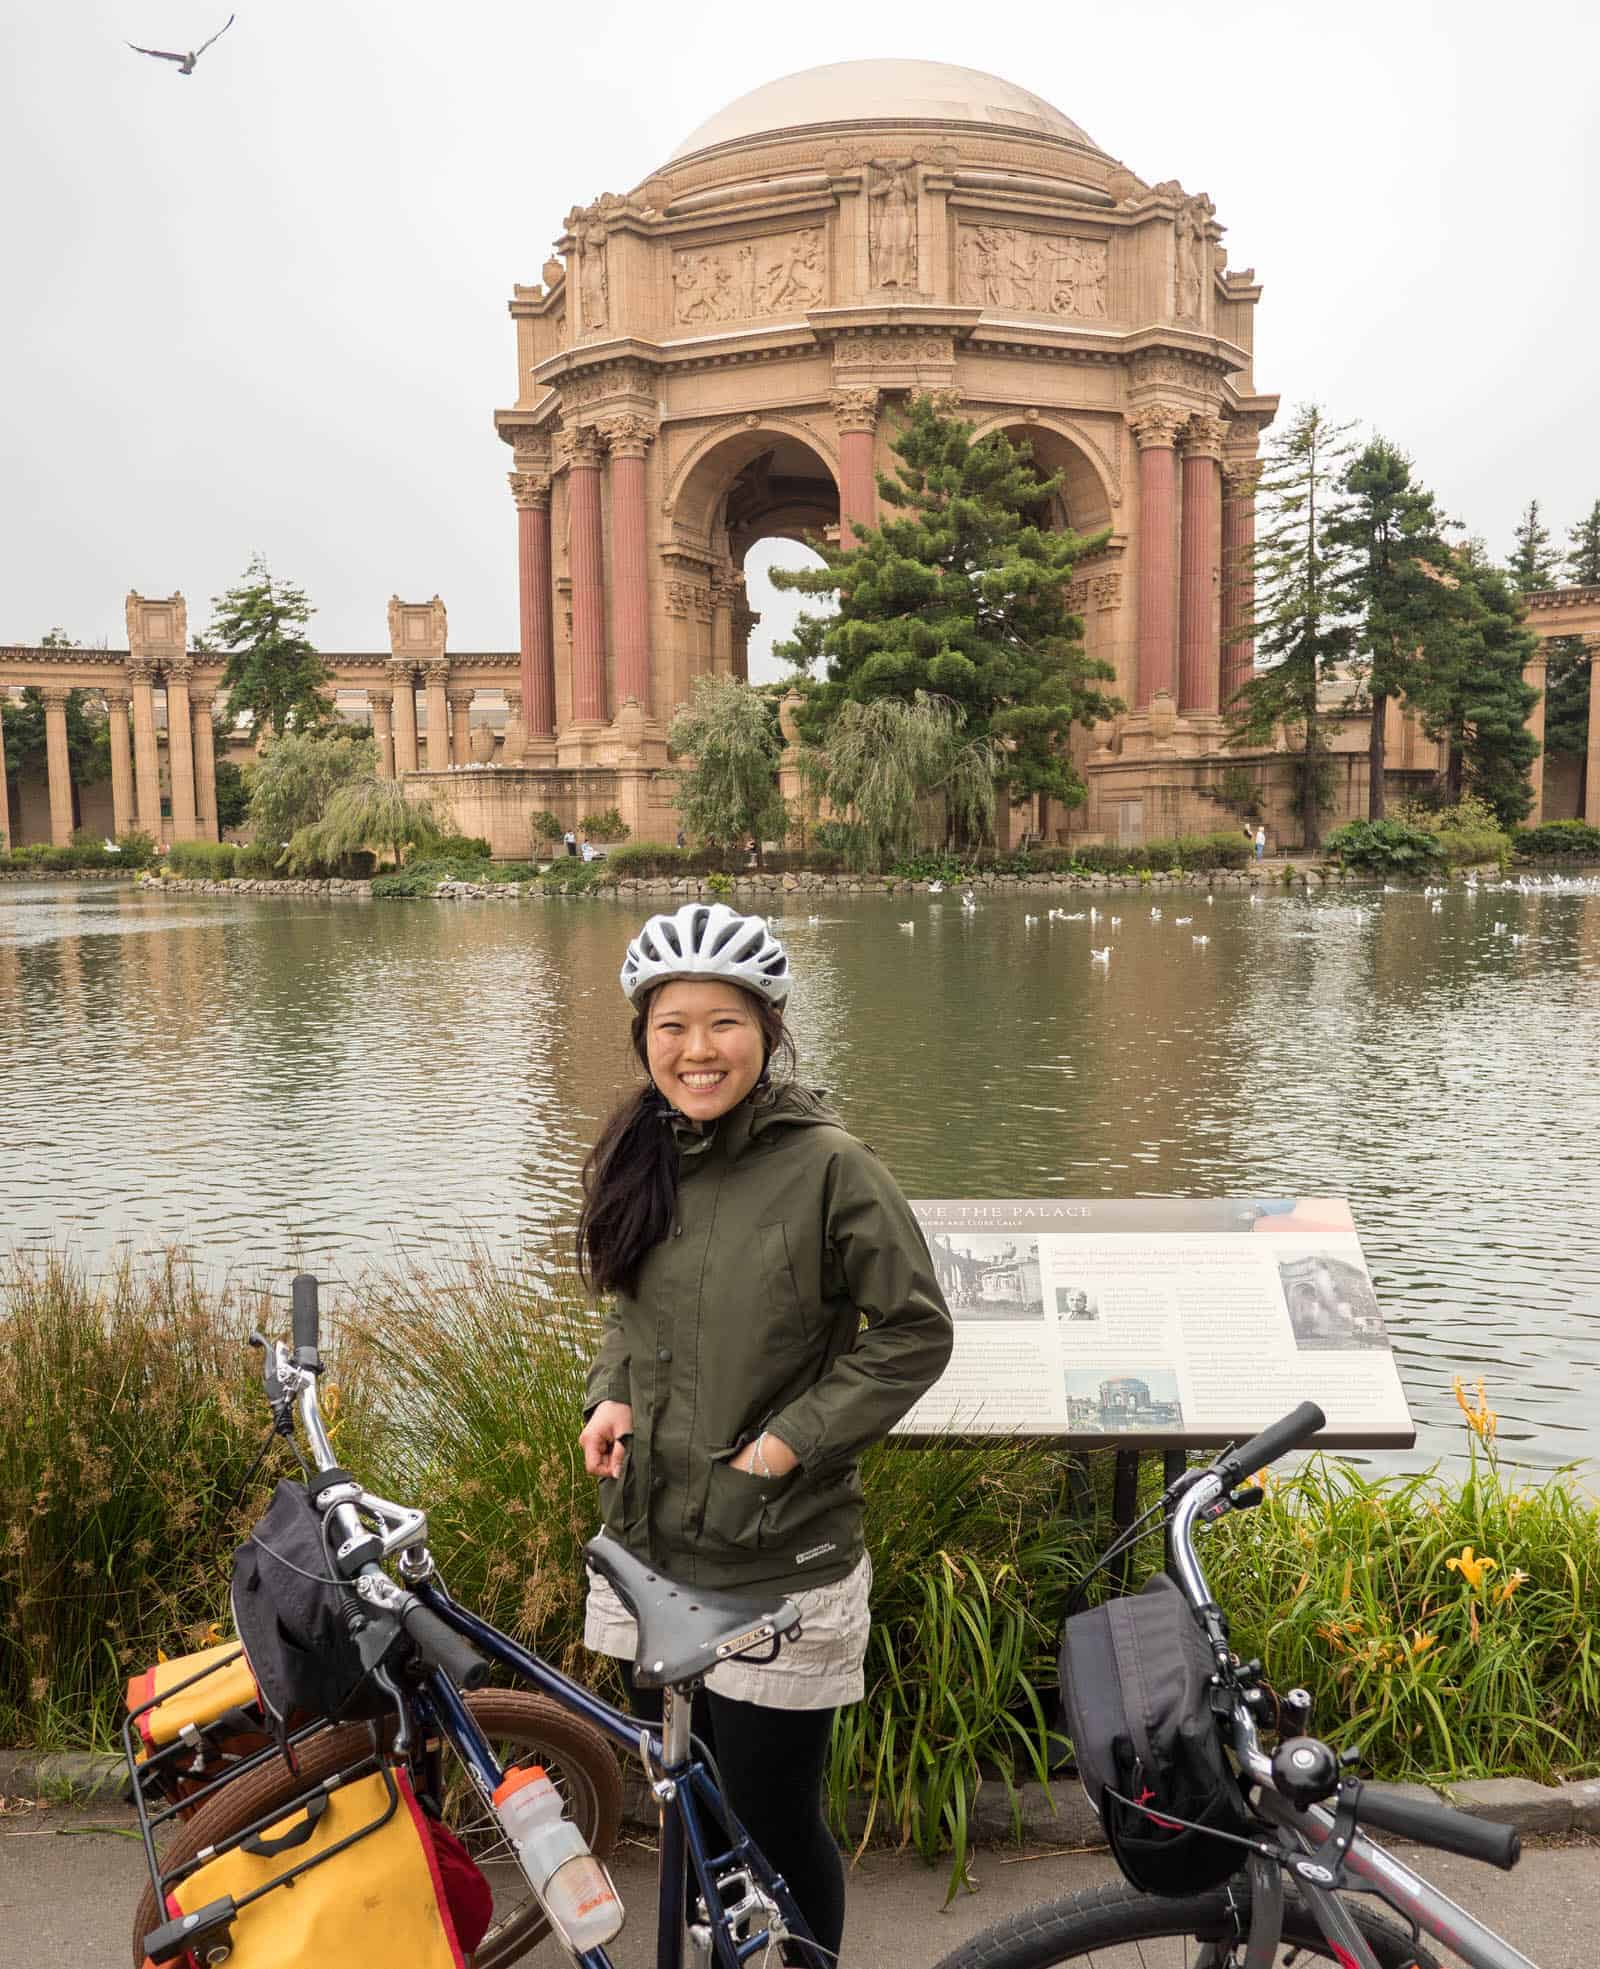 San Francisco's Palace of Fine Arts with woman on a bike tour